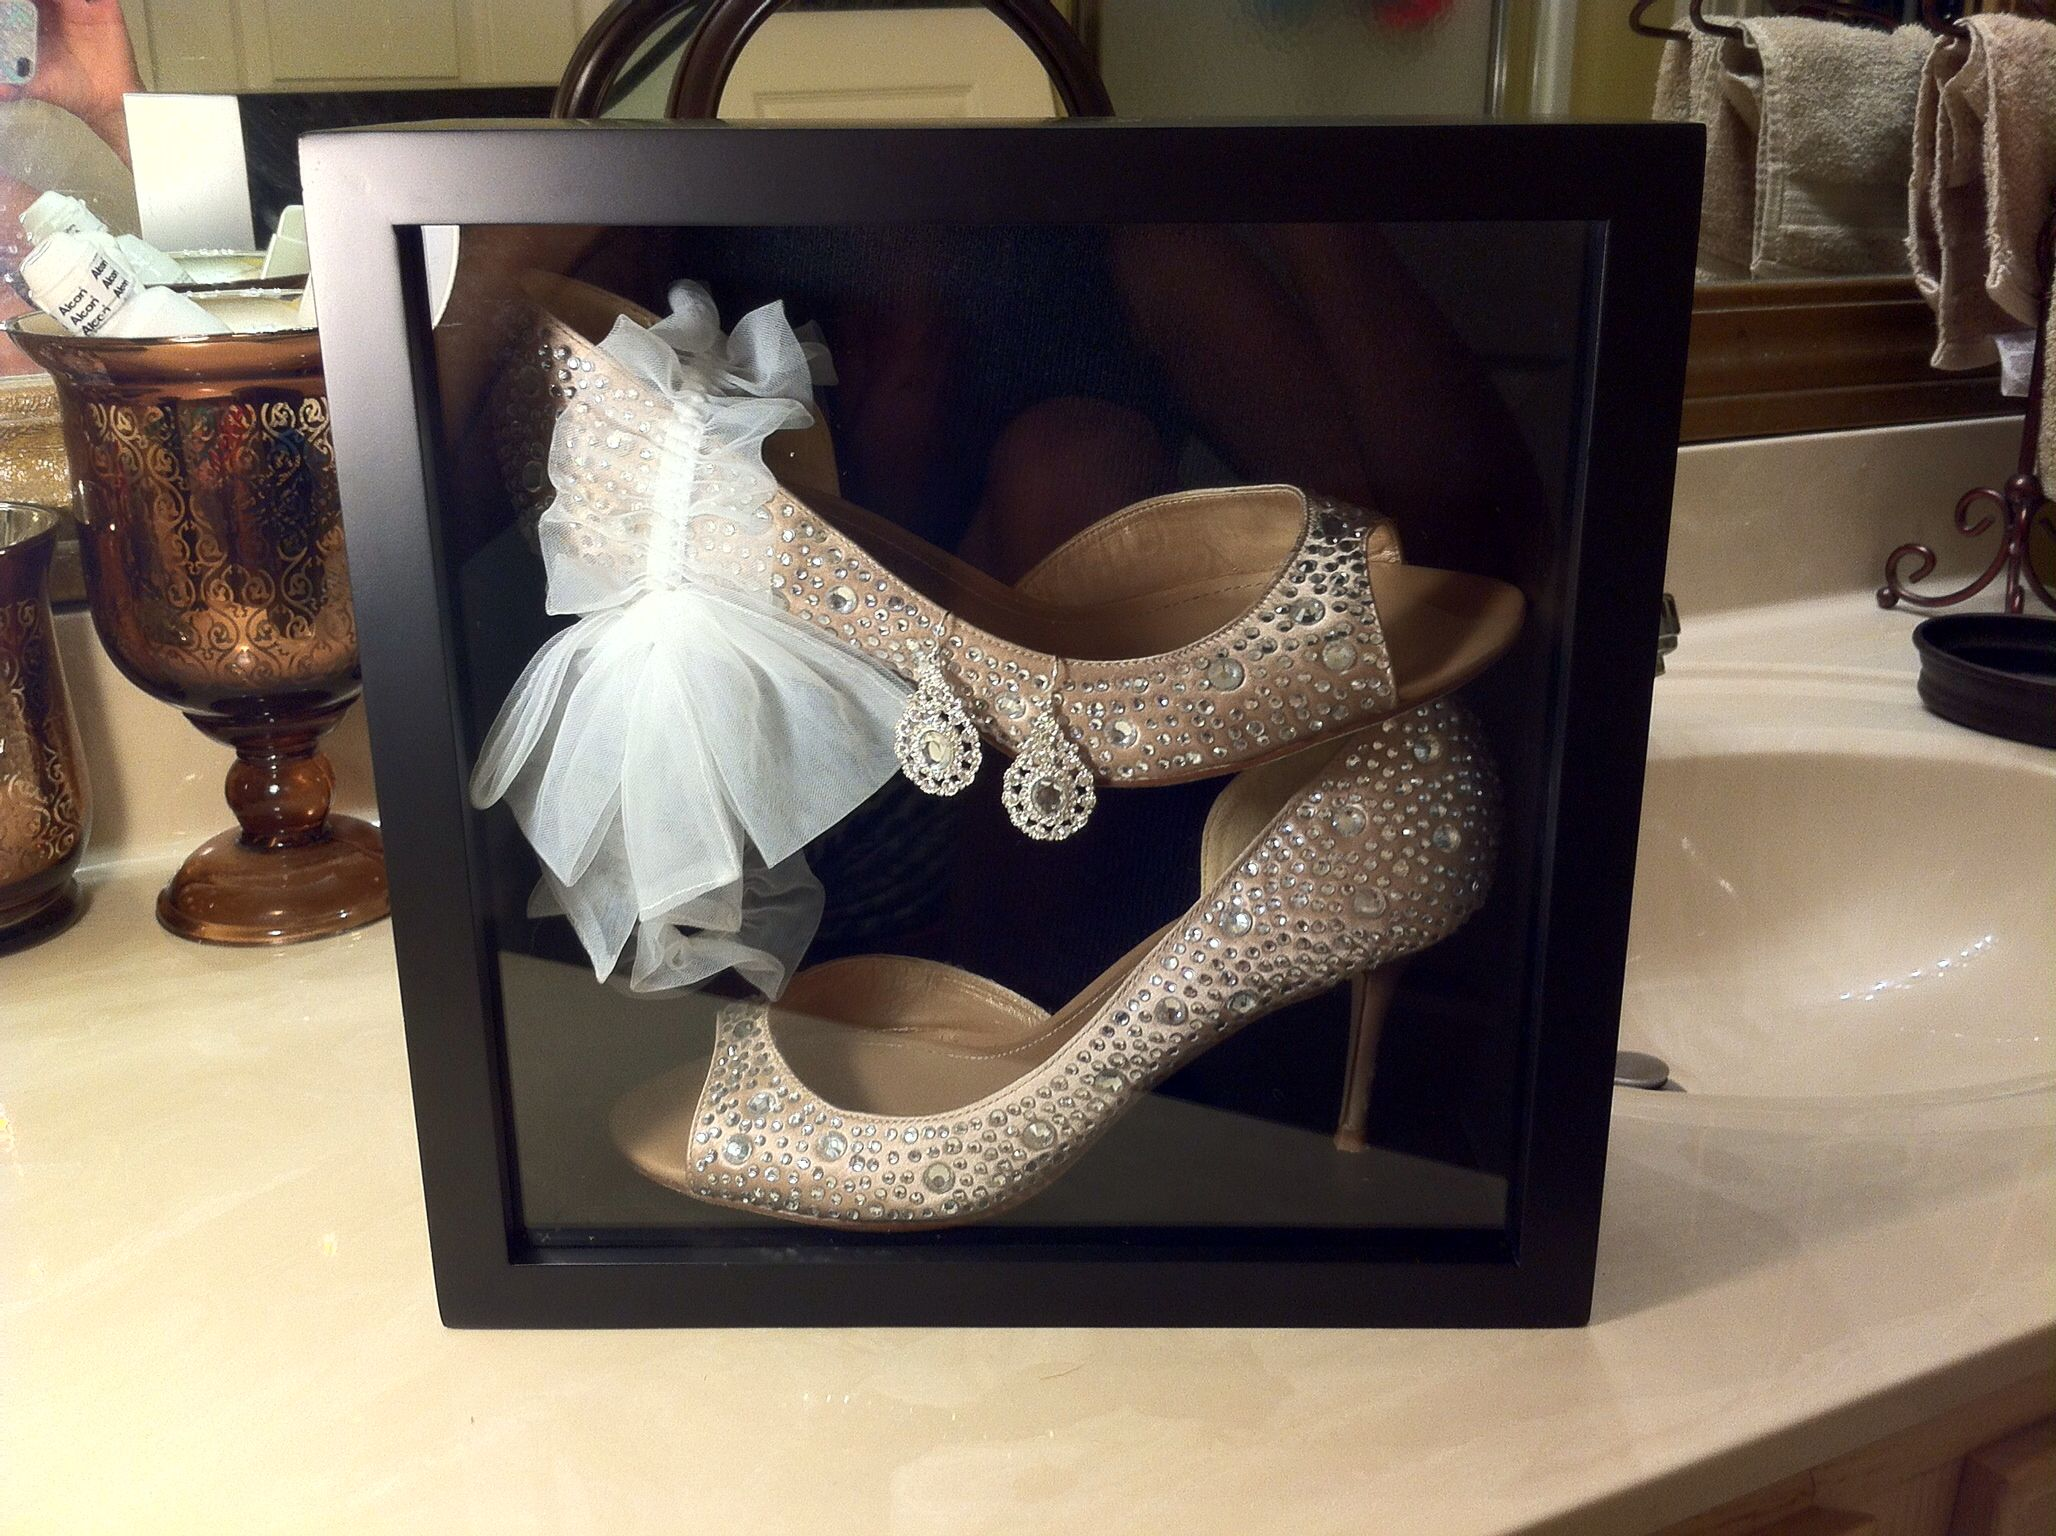 What a great idea placing your wedding shoes in a shadow box ...